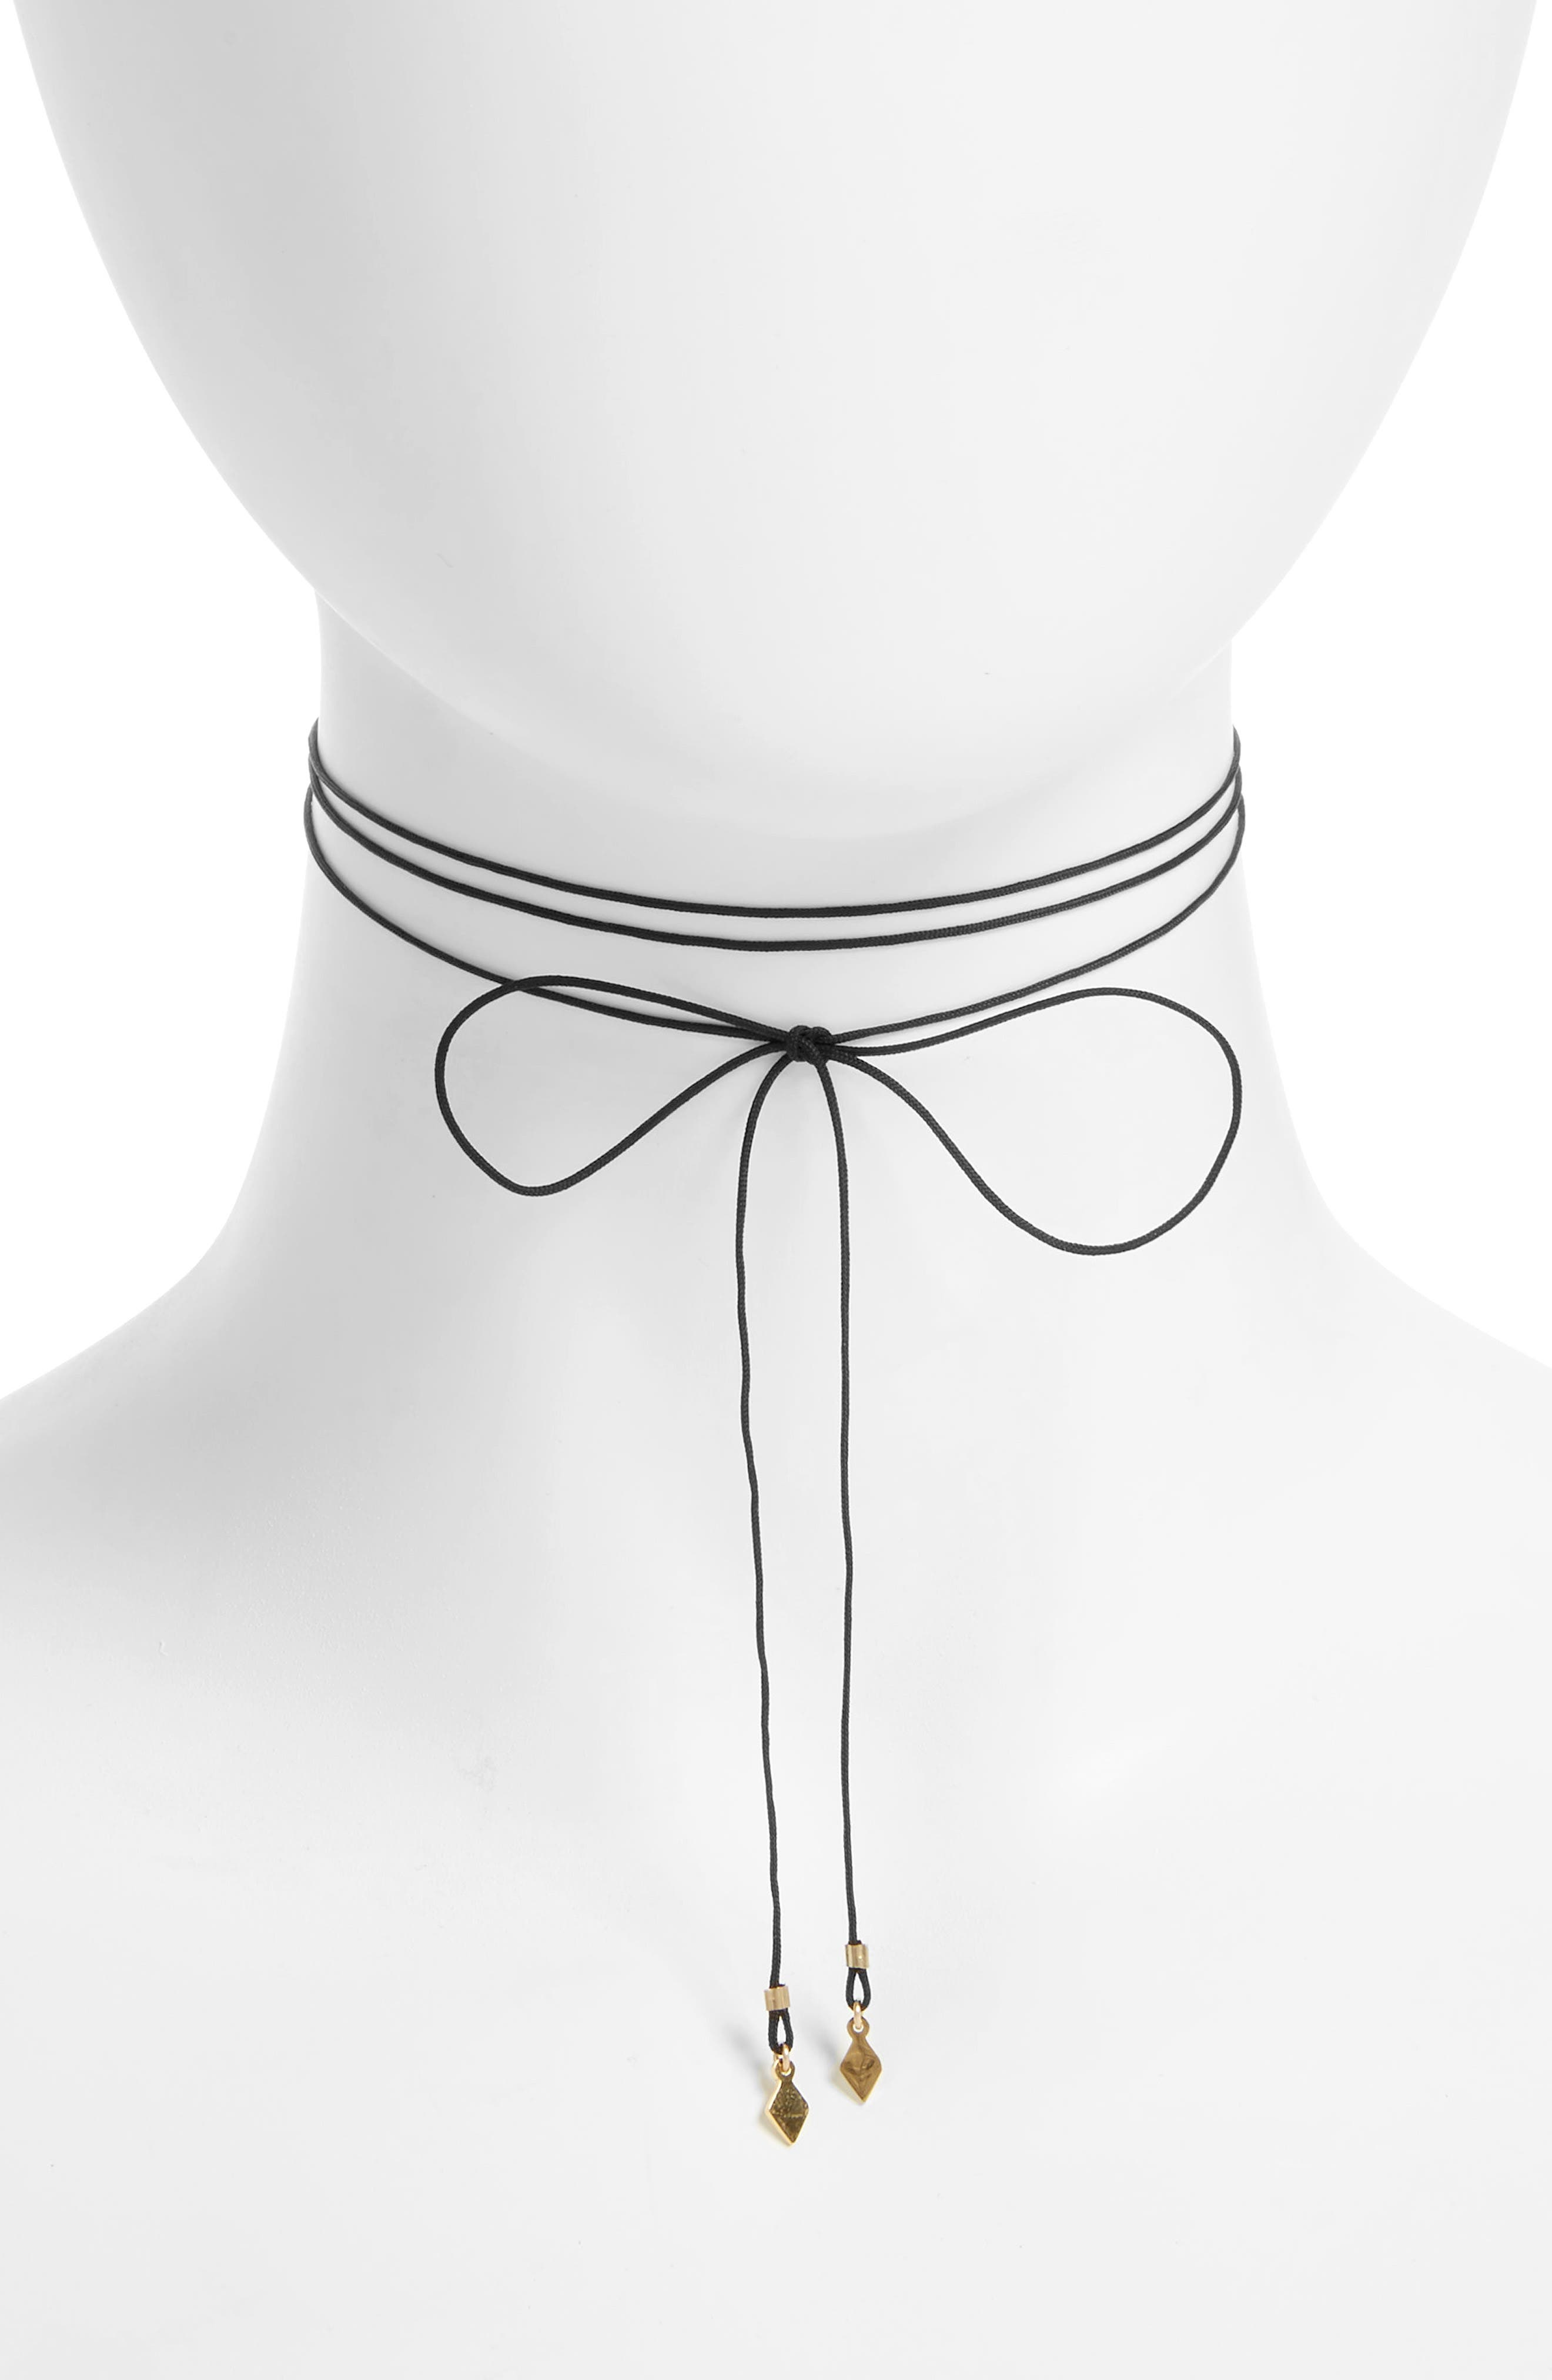 Seoul Little Maive Tiny Double Diamond Bow Tie Choker